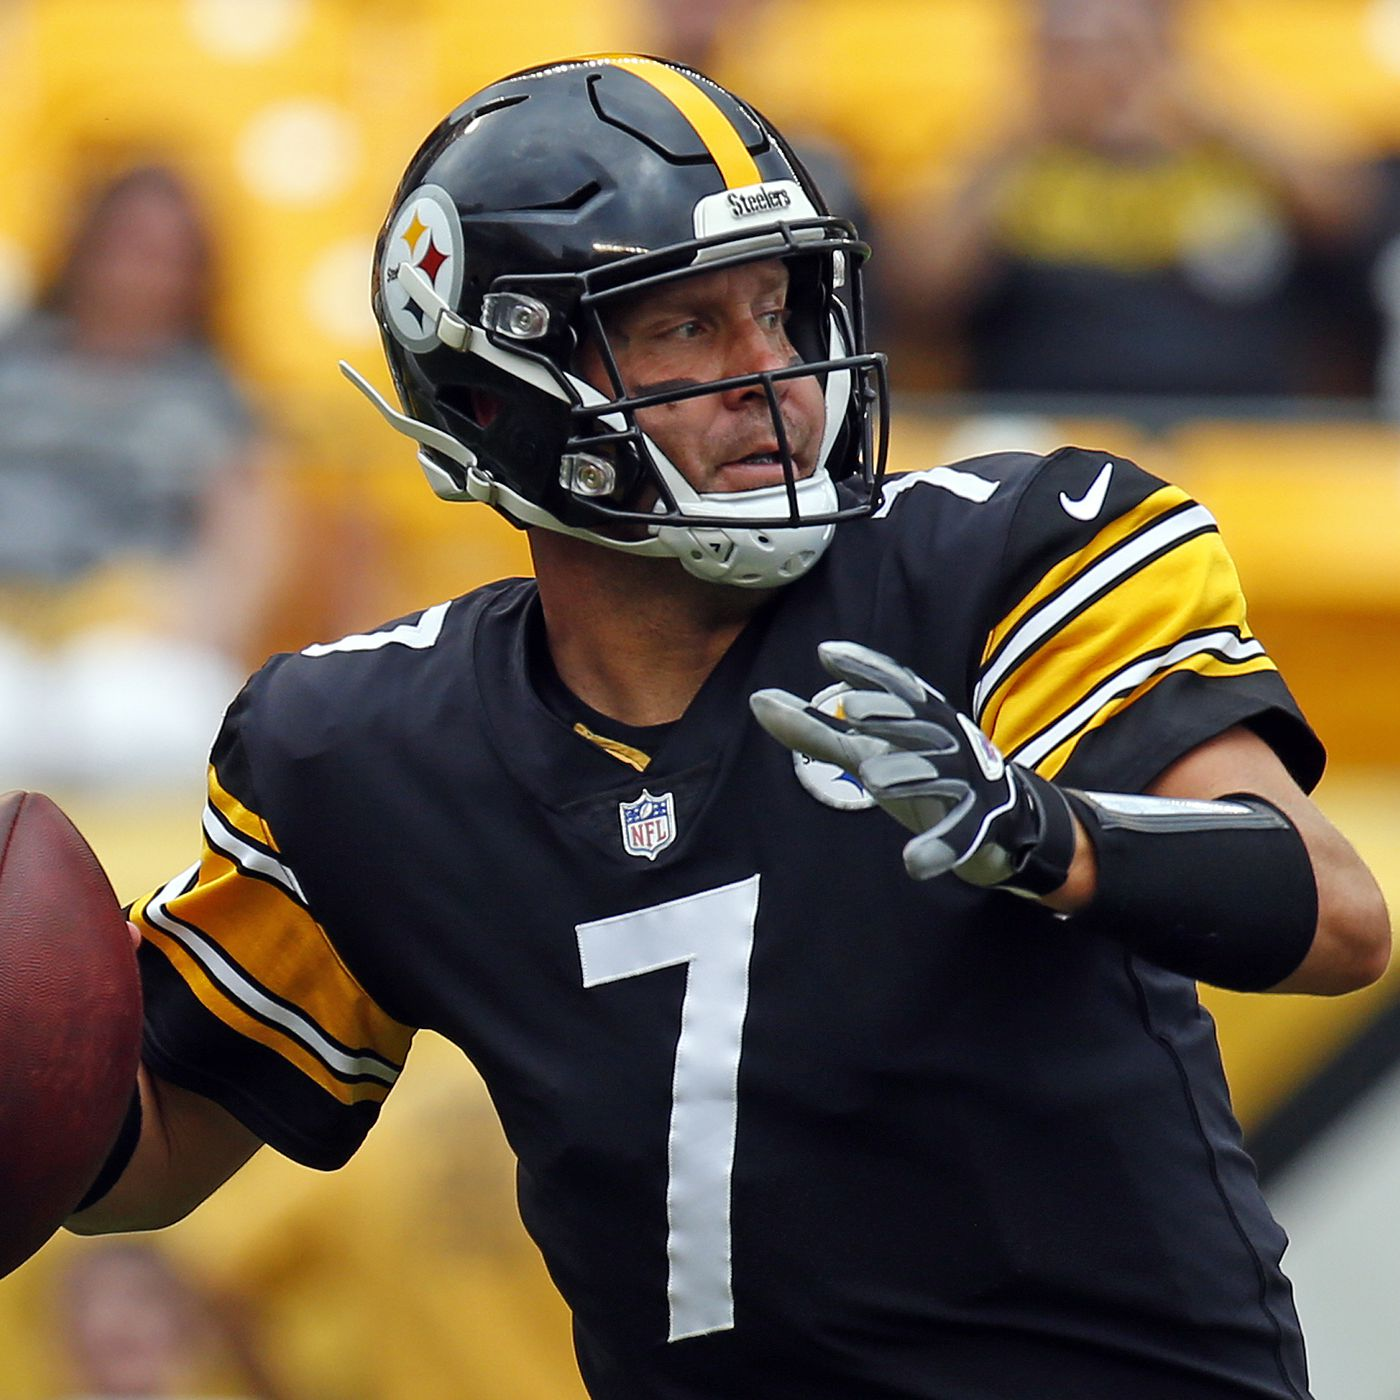 Steelers Injury Report  Ben Roethlisberger status uncertain after missing  second practice a3abf5b6d